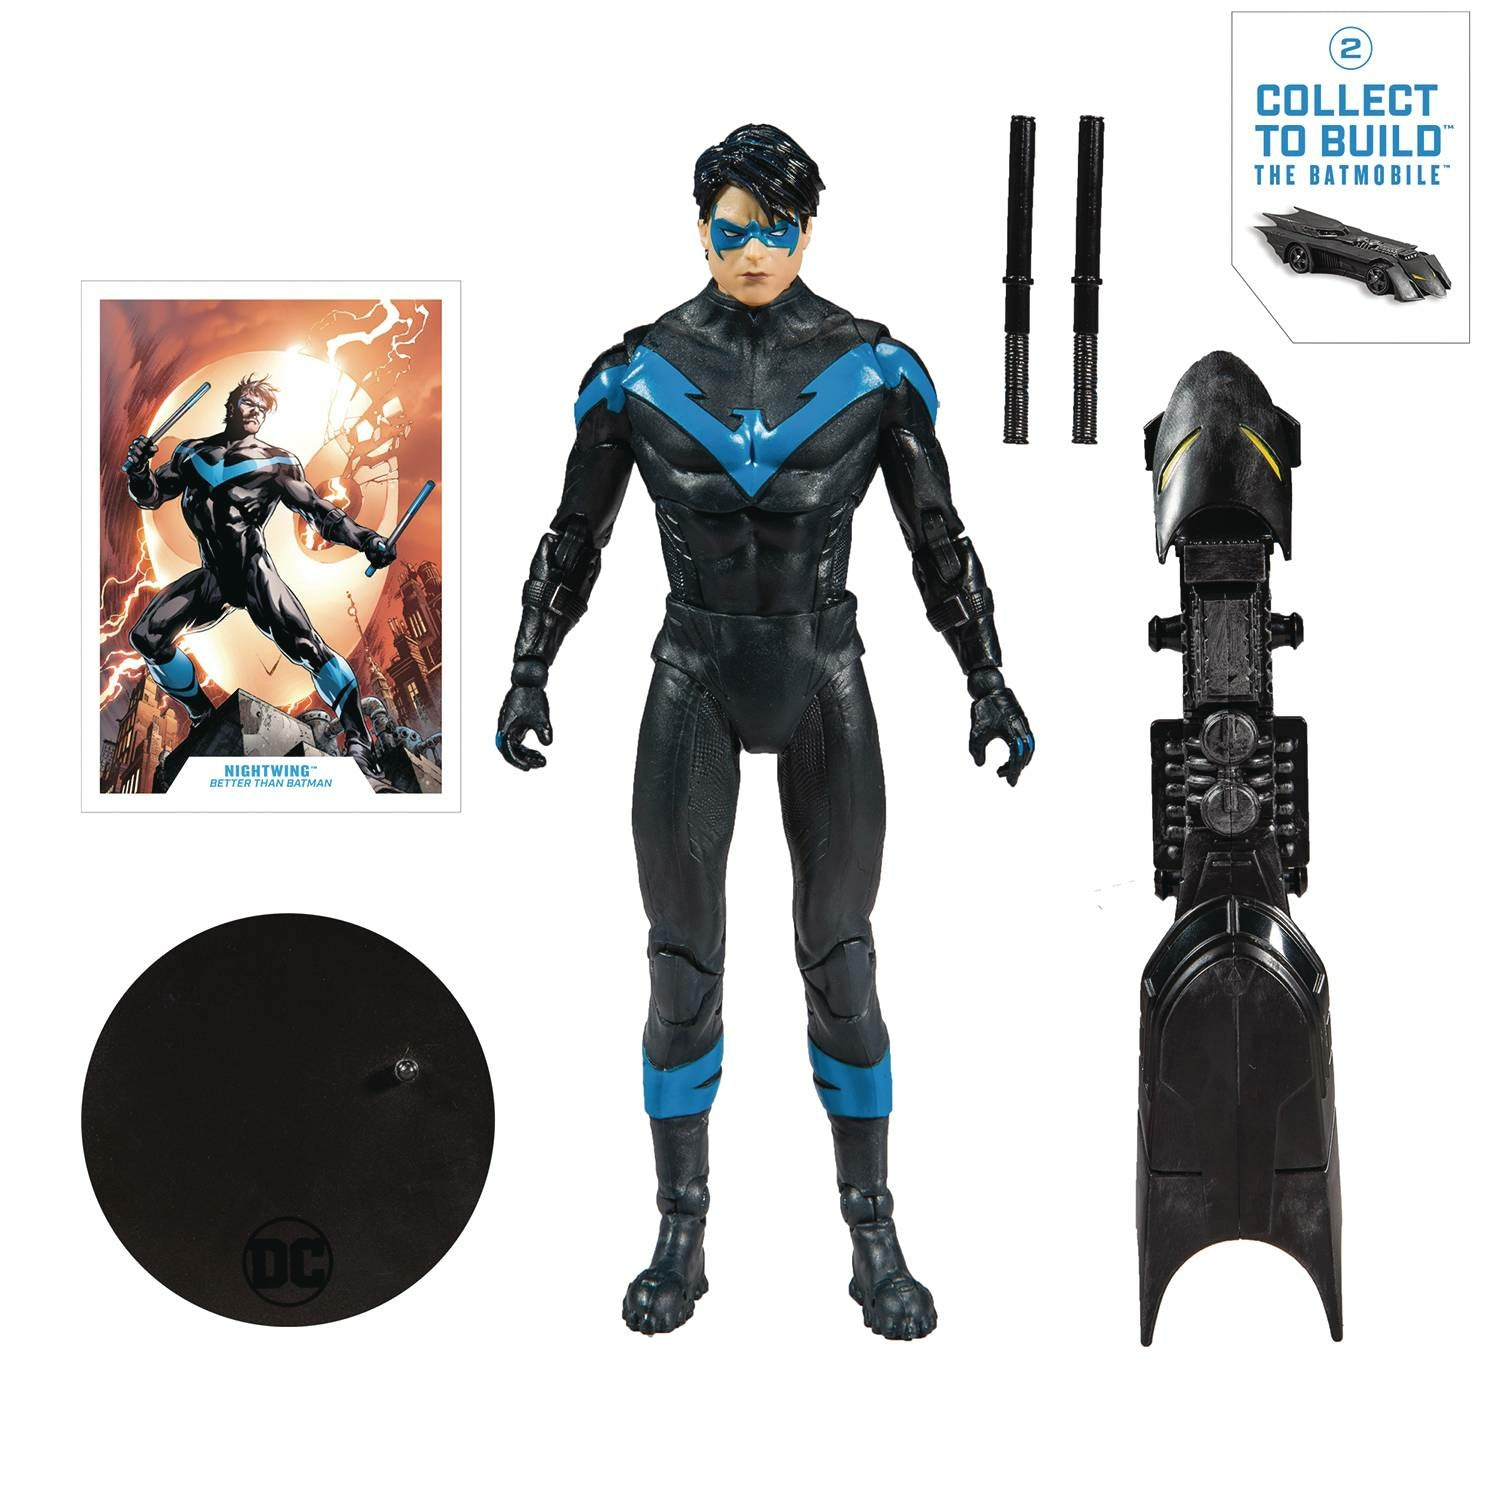 DC Collector Wv1 Modern Nightwing 7in Scale Action Figure CS